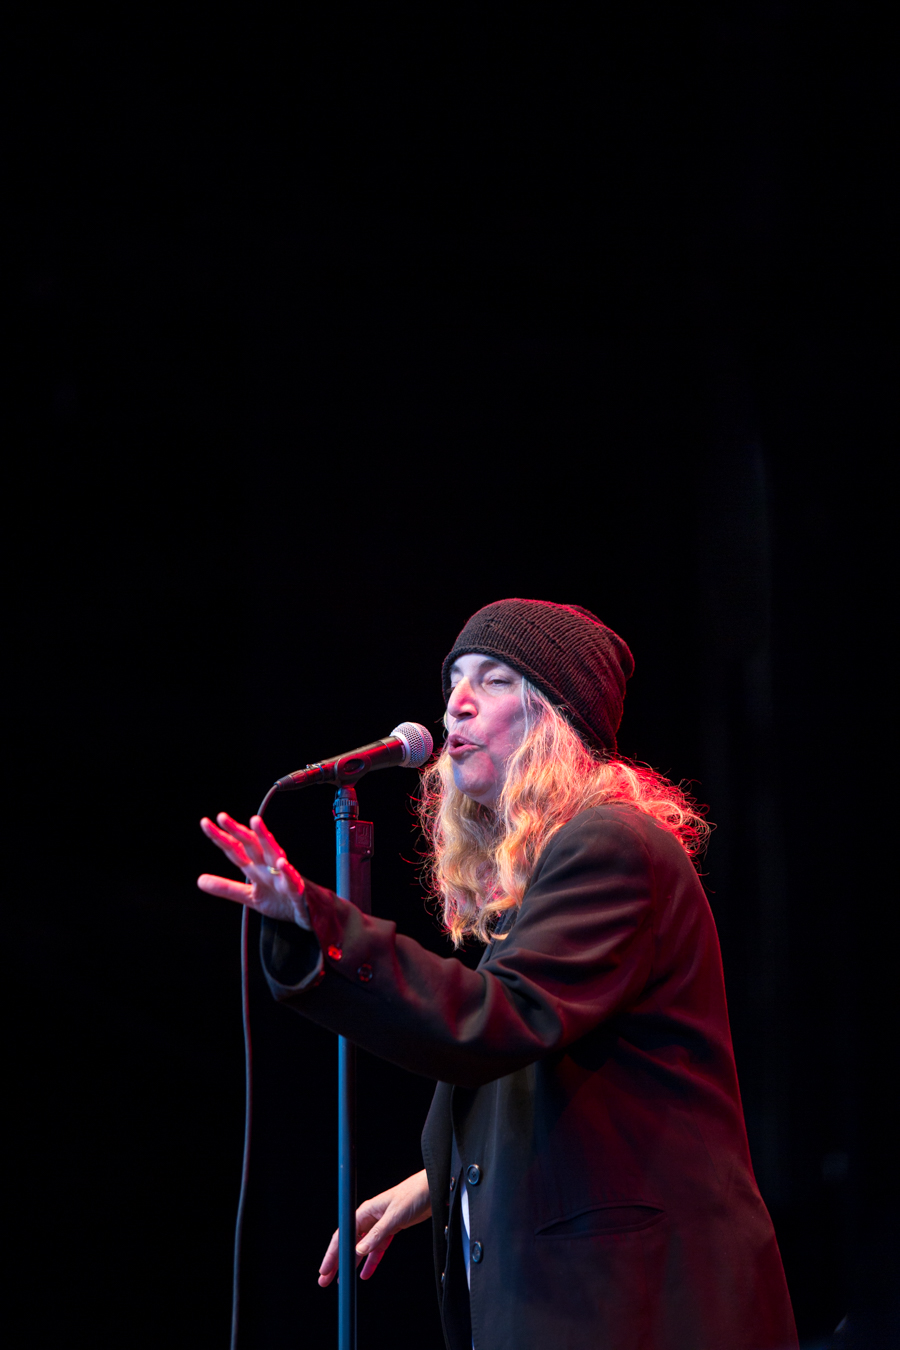 140730-Patti-Smith-Foto-Rebecca-Carlgren-livefoto-nu-photo--4